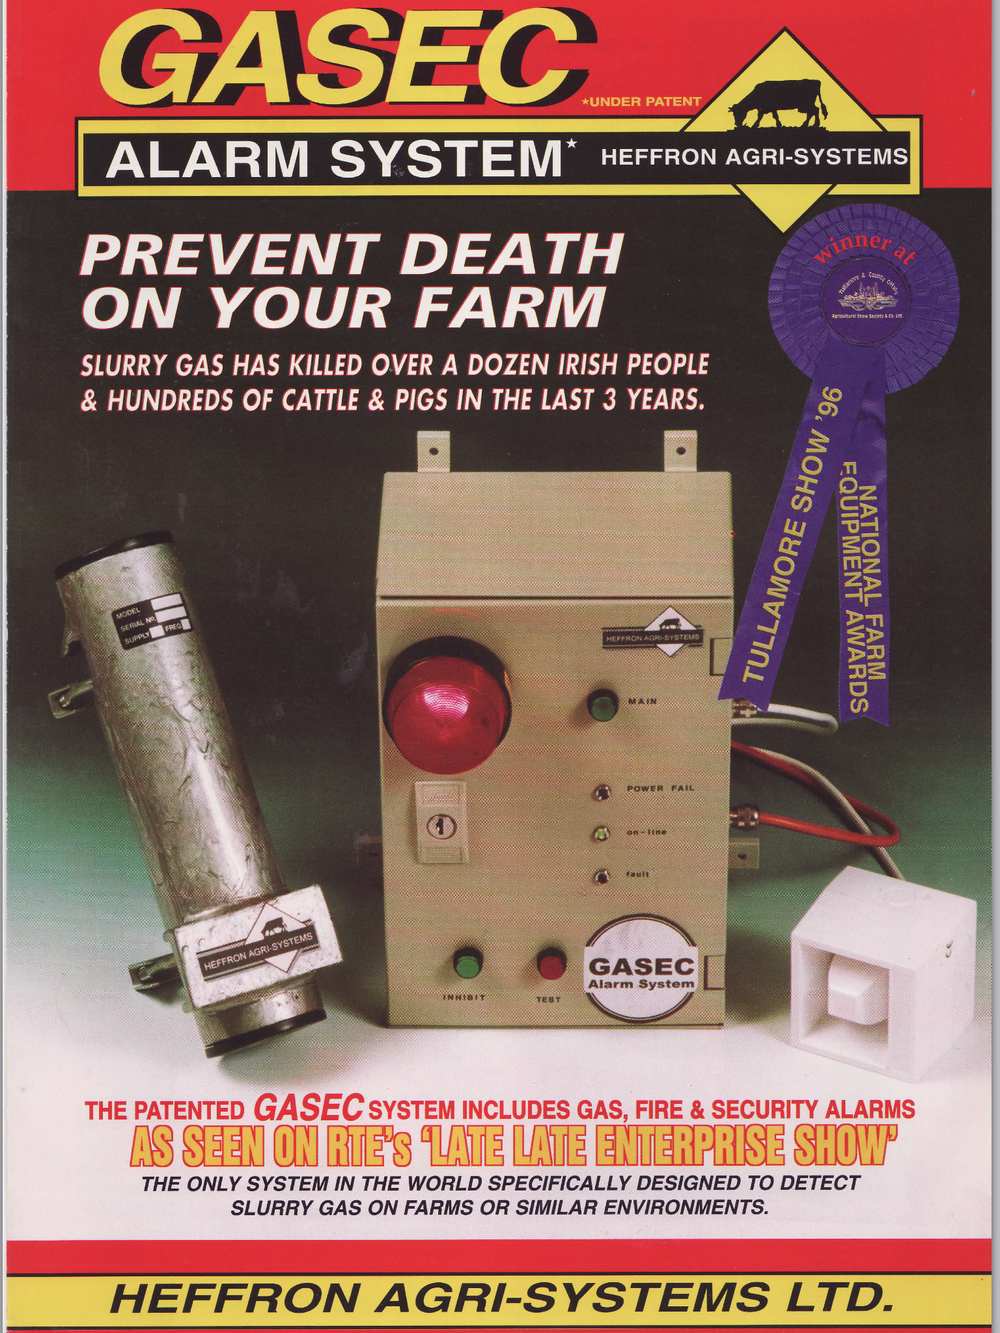 Award winning GASEC toxic gas alarm brochure for Farms